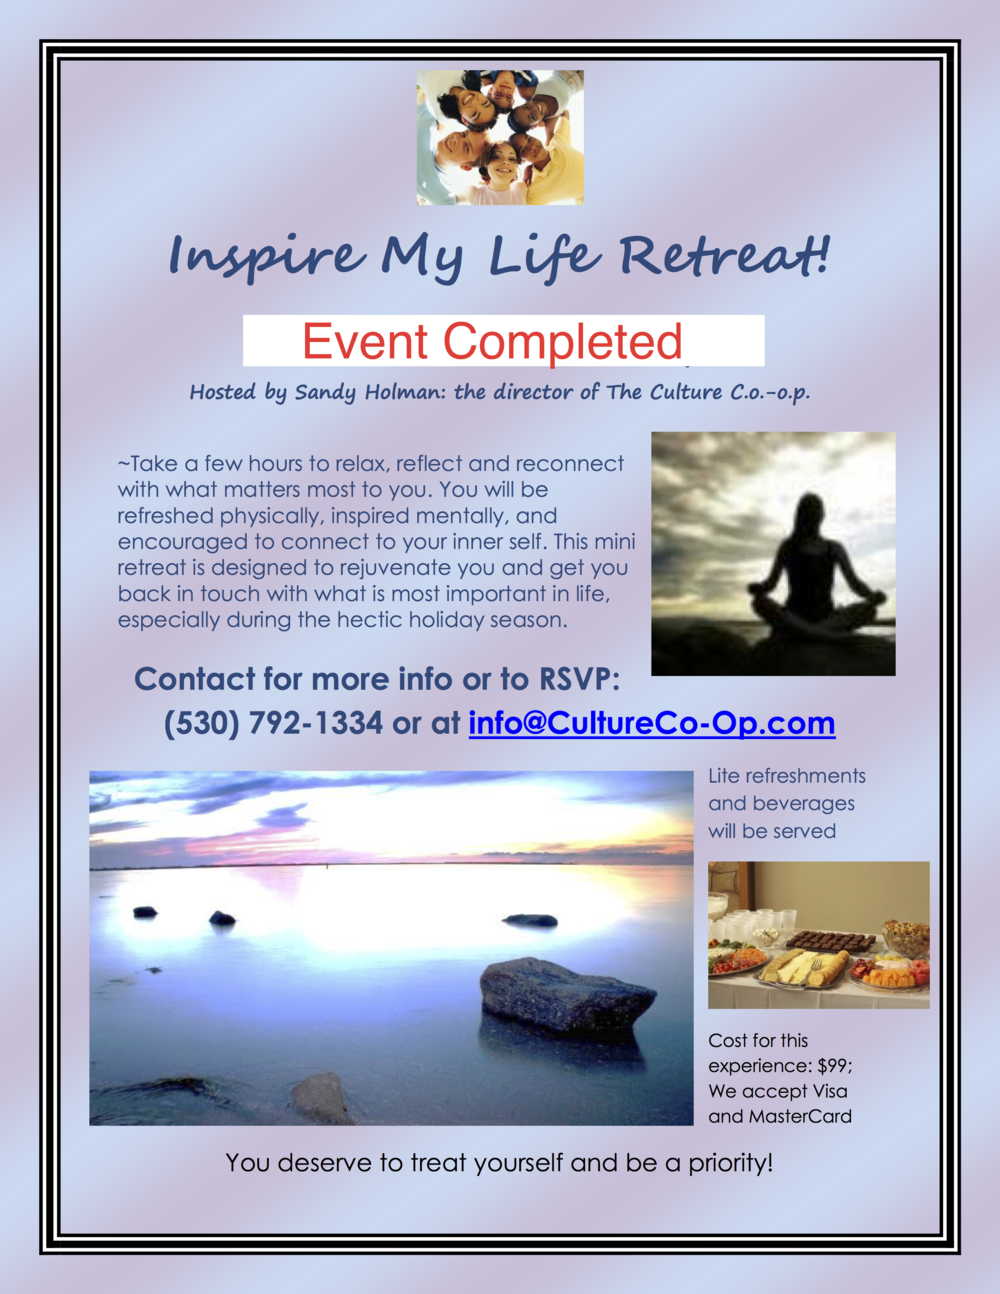 Inspire+My+Life+Retreat+Flyer+Version+2.png